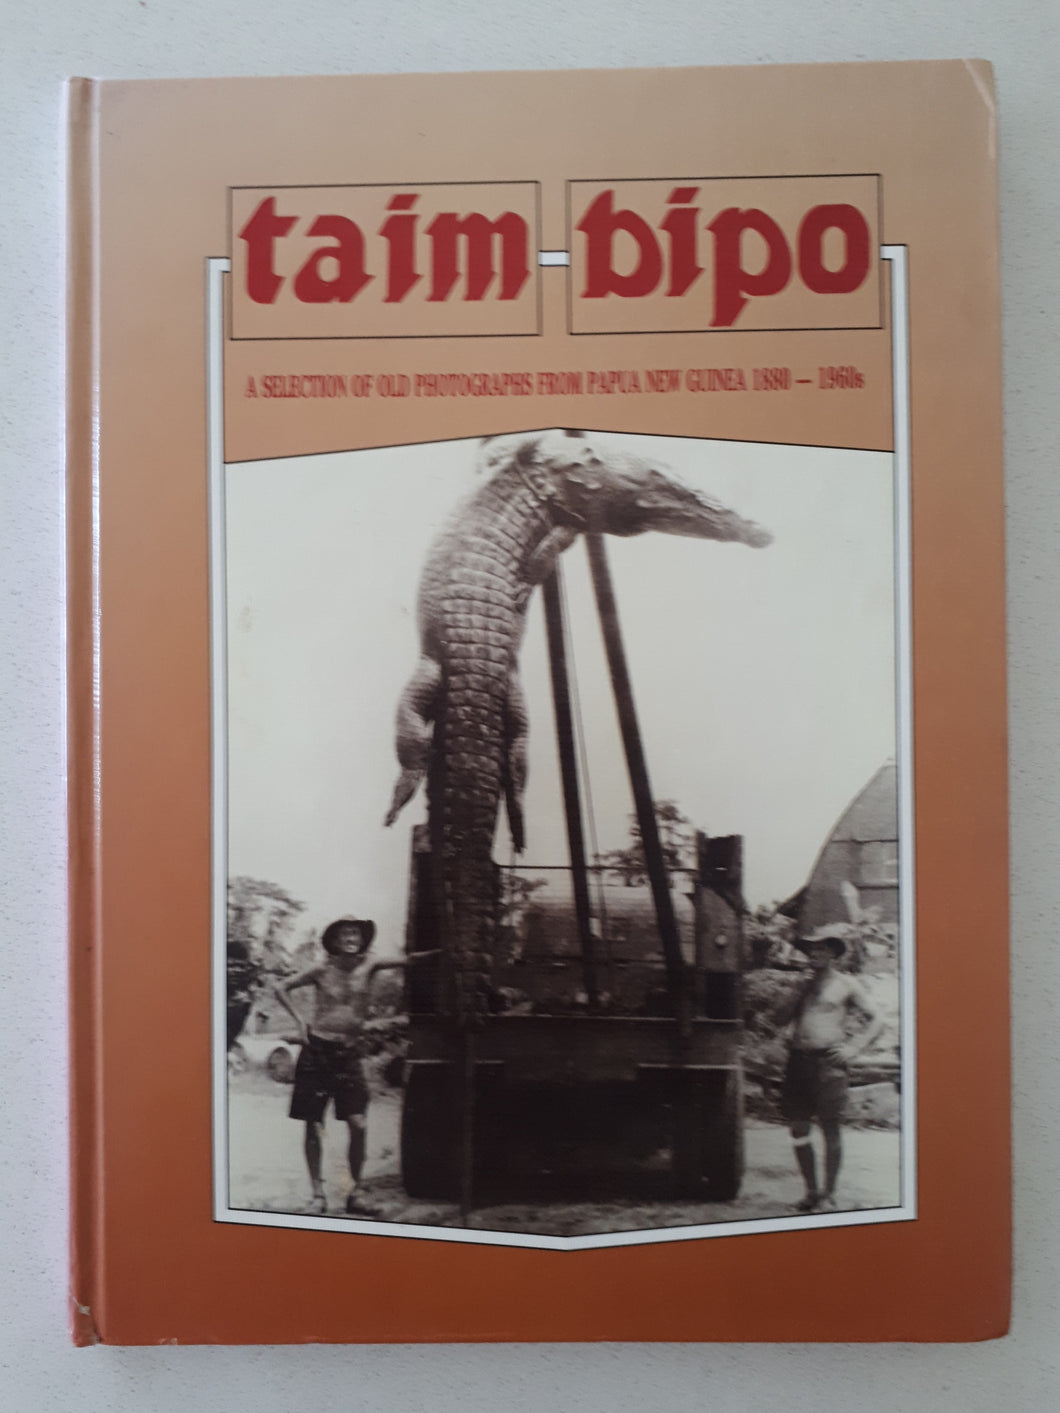 TAIM BIPO by Michael Coutts